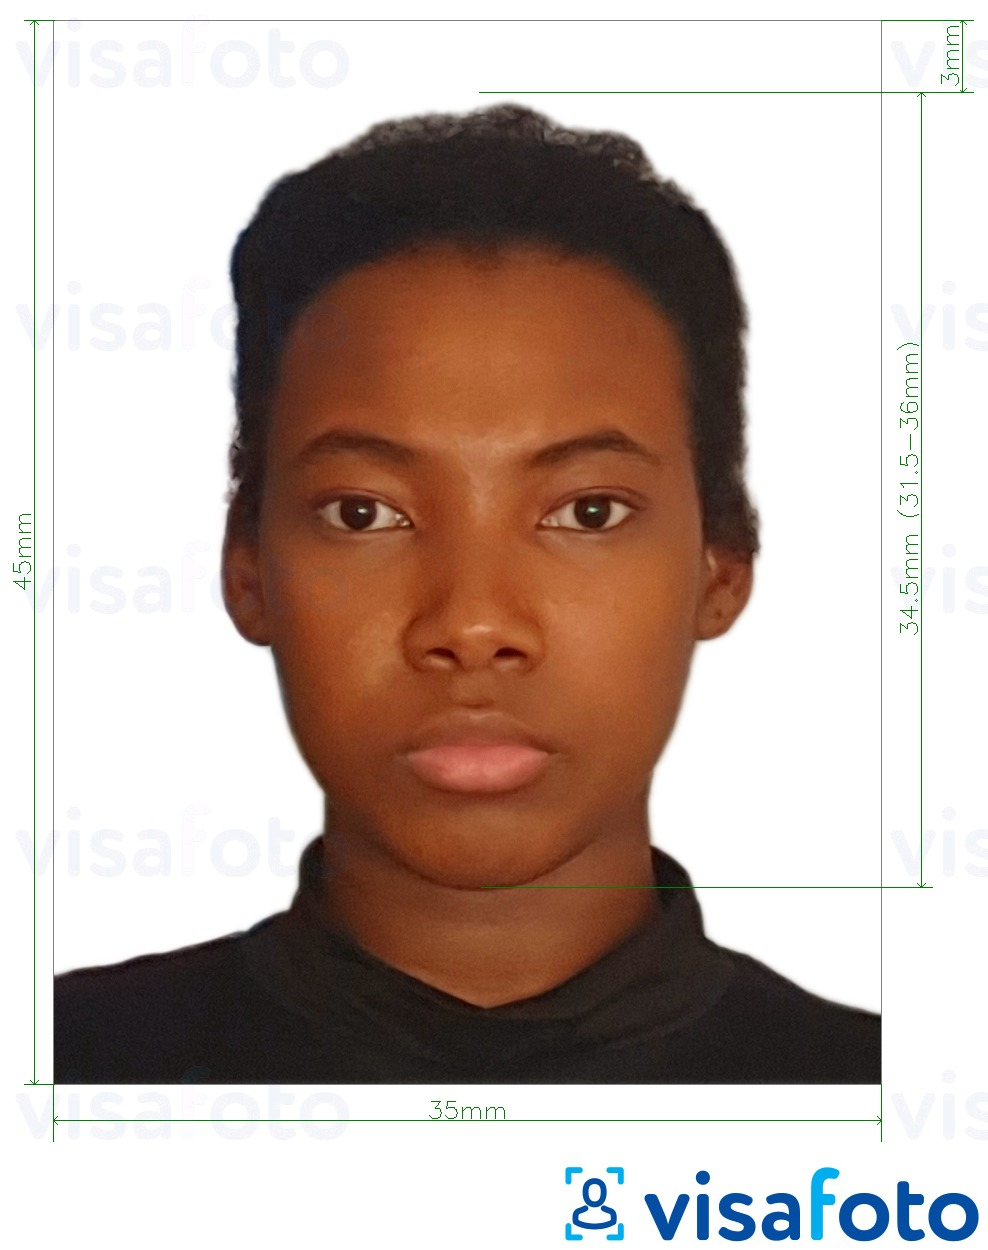 Example of photo for Ghana passport 3.5x4.5 cm (35x45 mm) with exact size specification